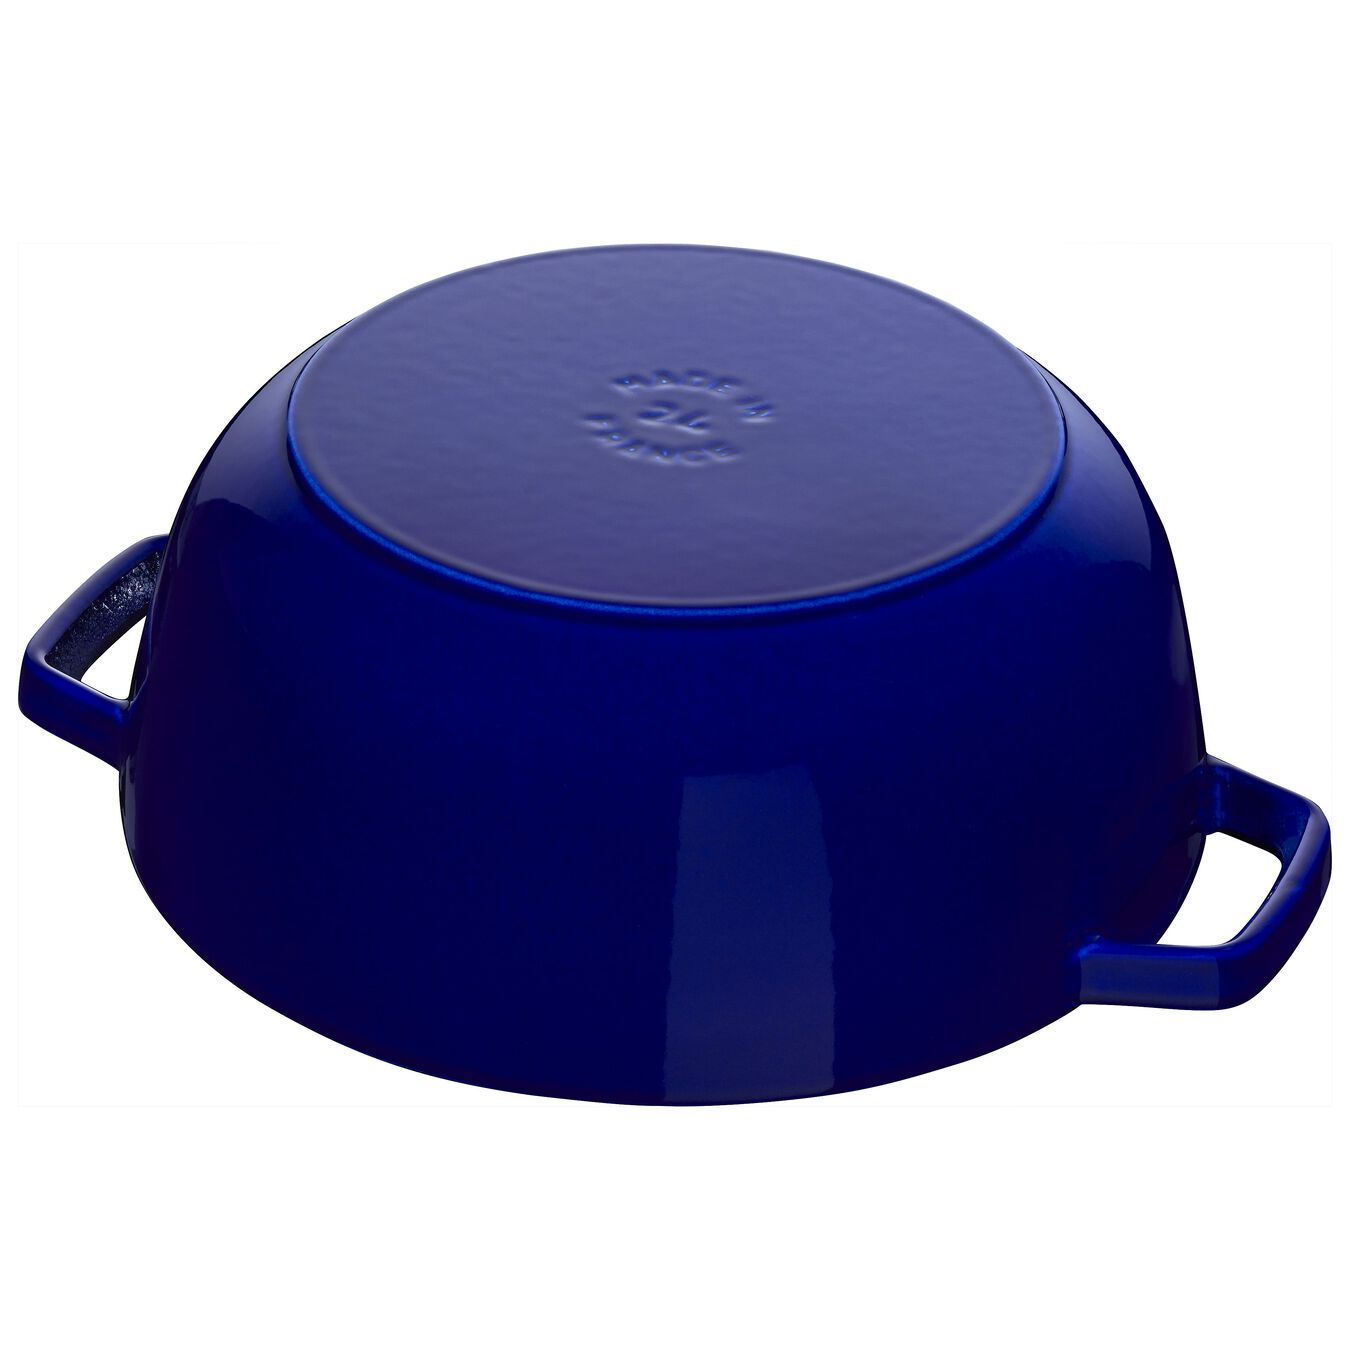 5 l Cast iron round French oven, Dark-Blue,,large 4